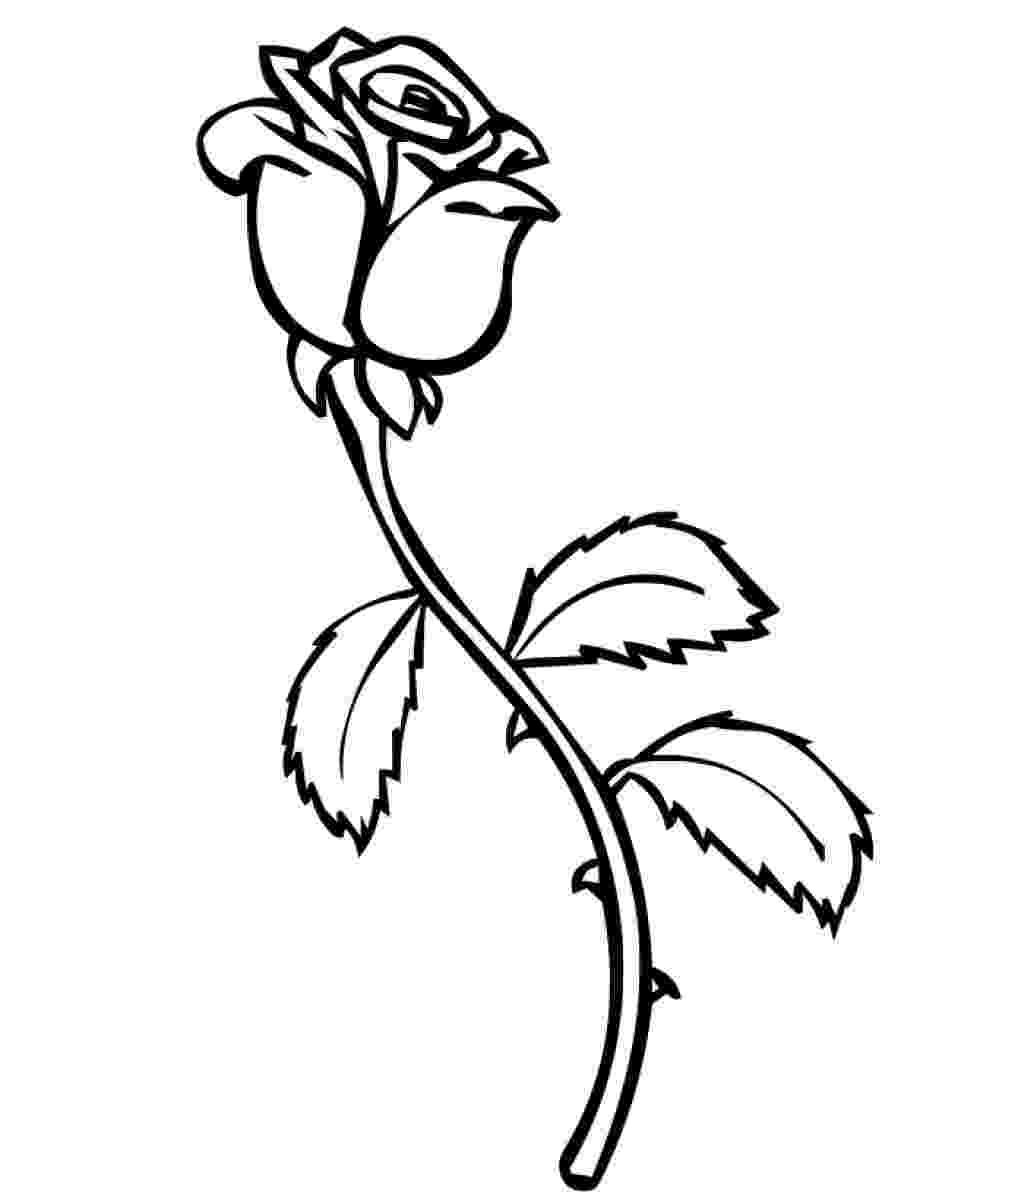 rose coloring sheets top 10 rose coloring pages that are beyond beautiful rose coloring sheets